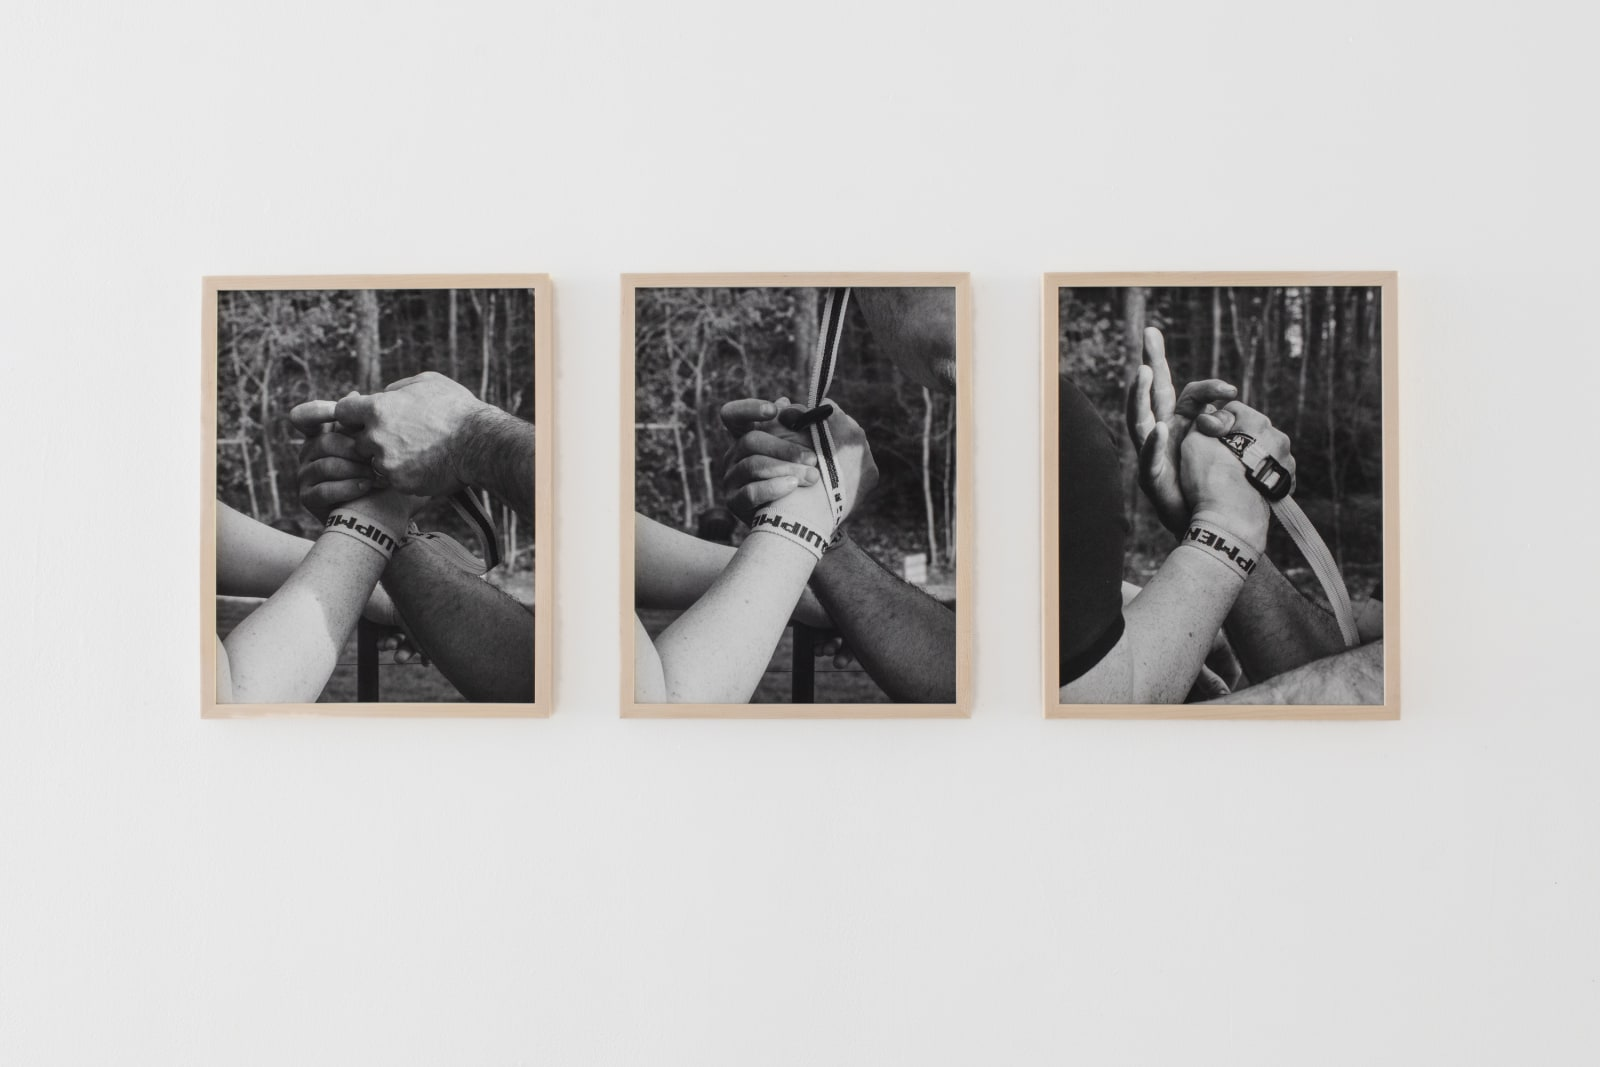 Max Gavrich Untitled (Armbenders Strap), 2021 Archival pigment prints in ash frames each: 14 x 18 inches overall: 18 x 40 inches edition of 5 + 2 AP